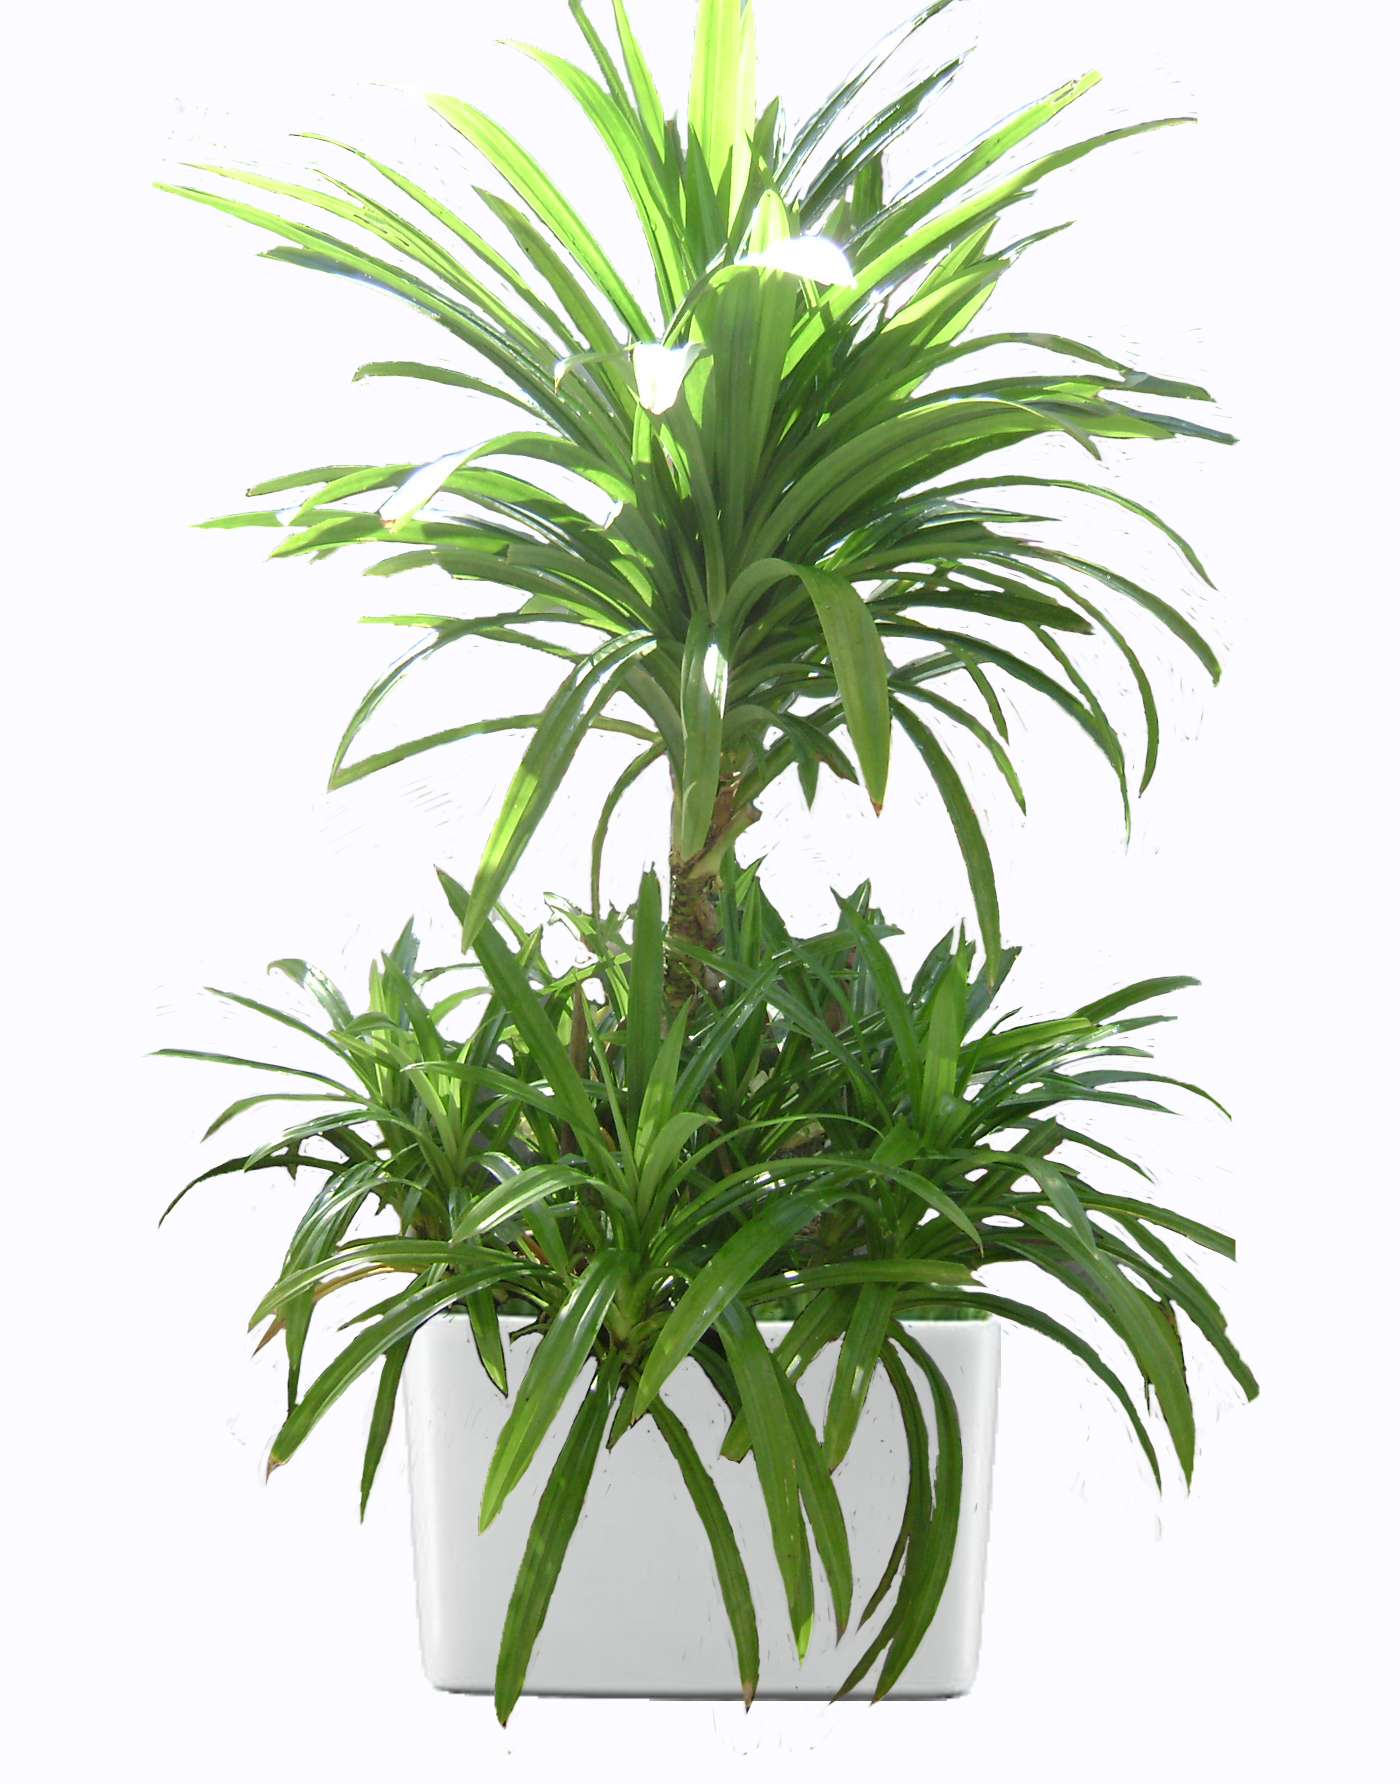 Rent a plant large plants green world builders inc for Philippine garden plants